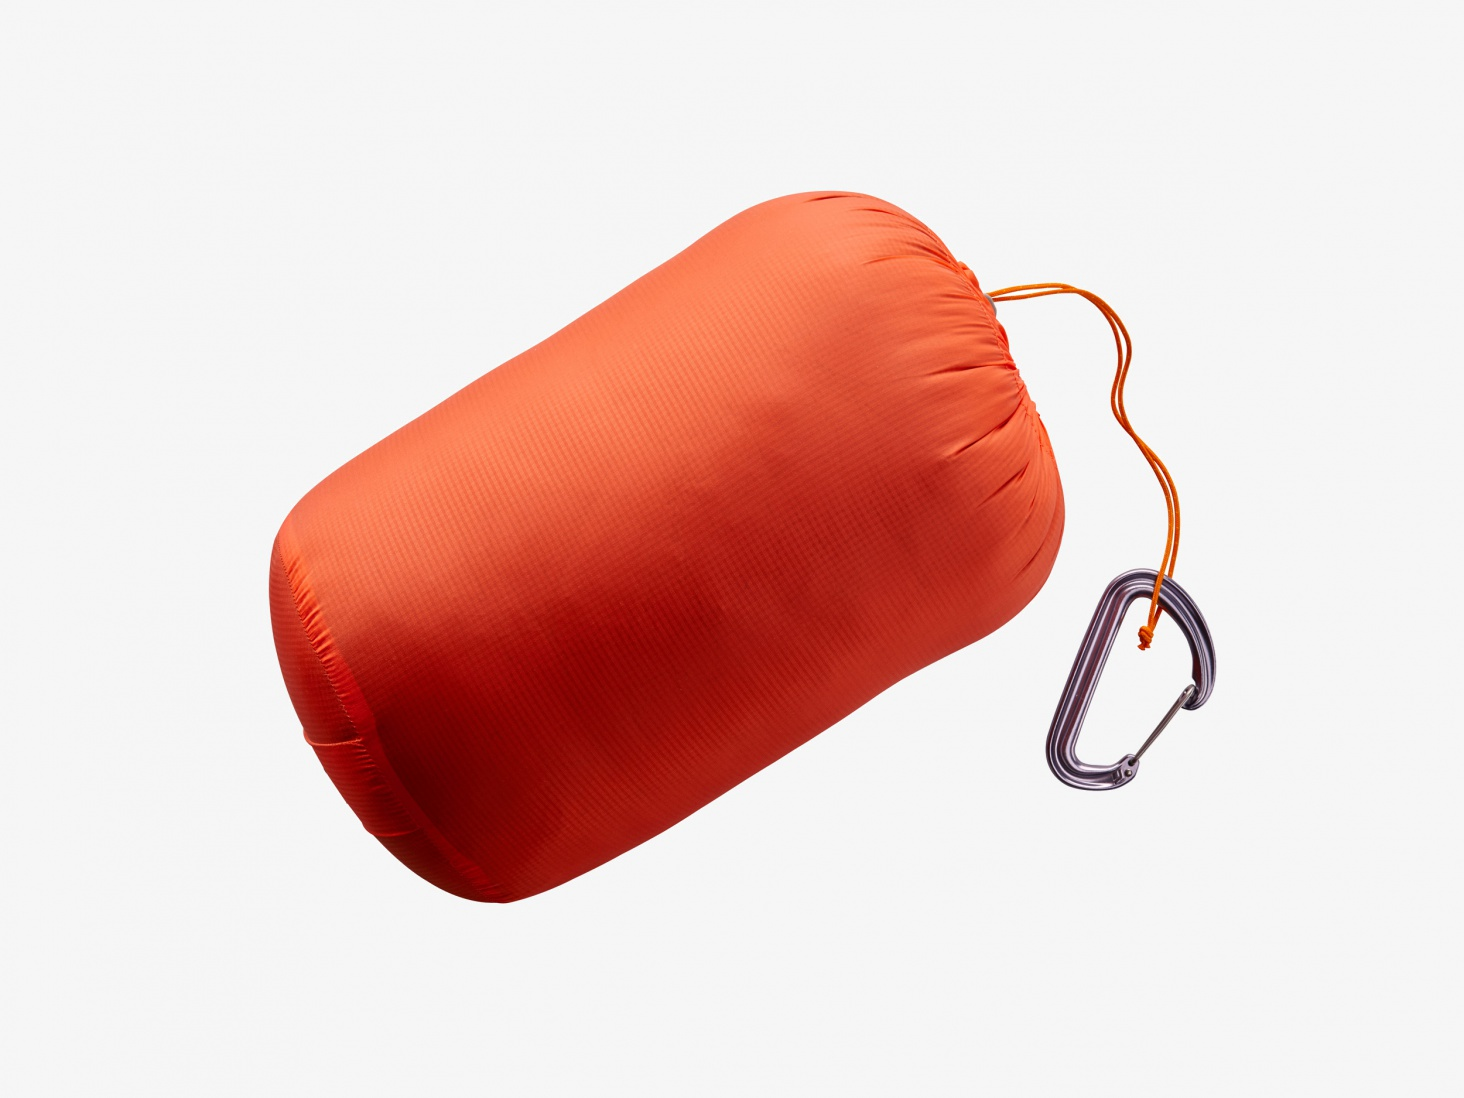 Patagonia Sleepingbag